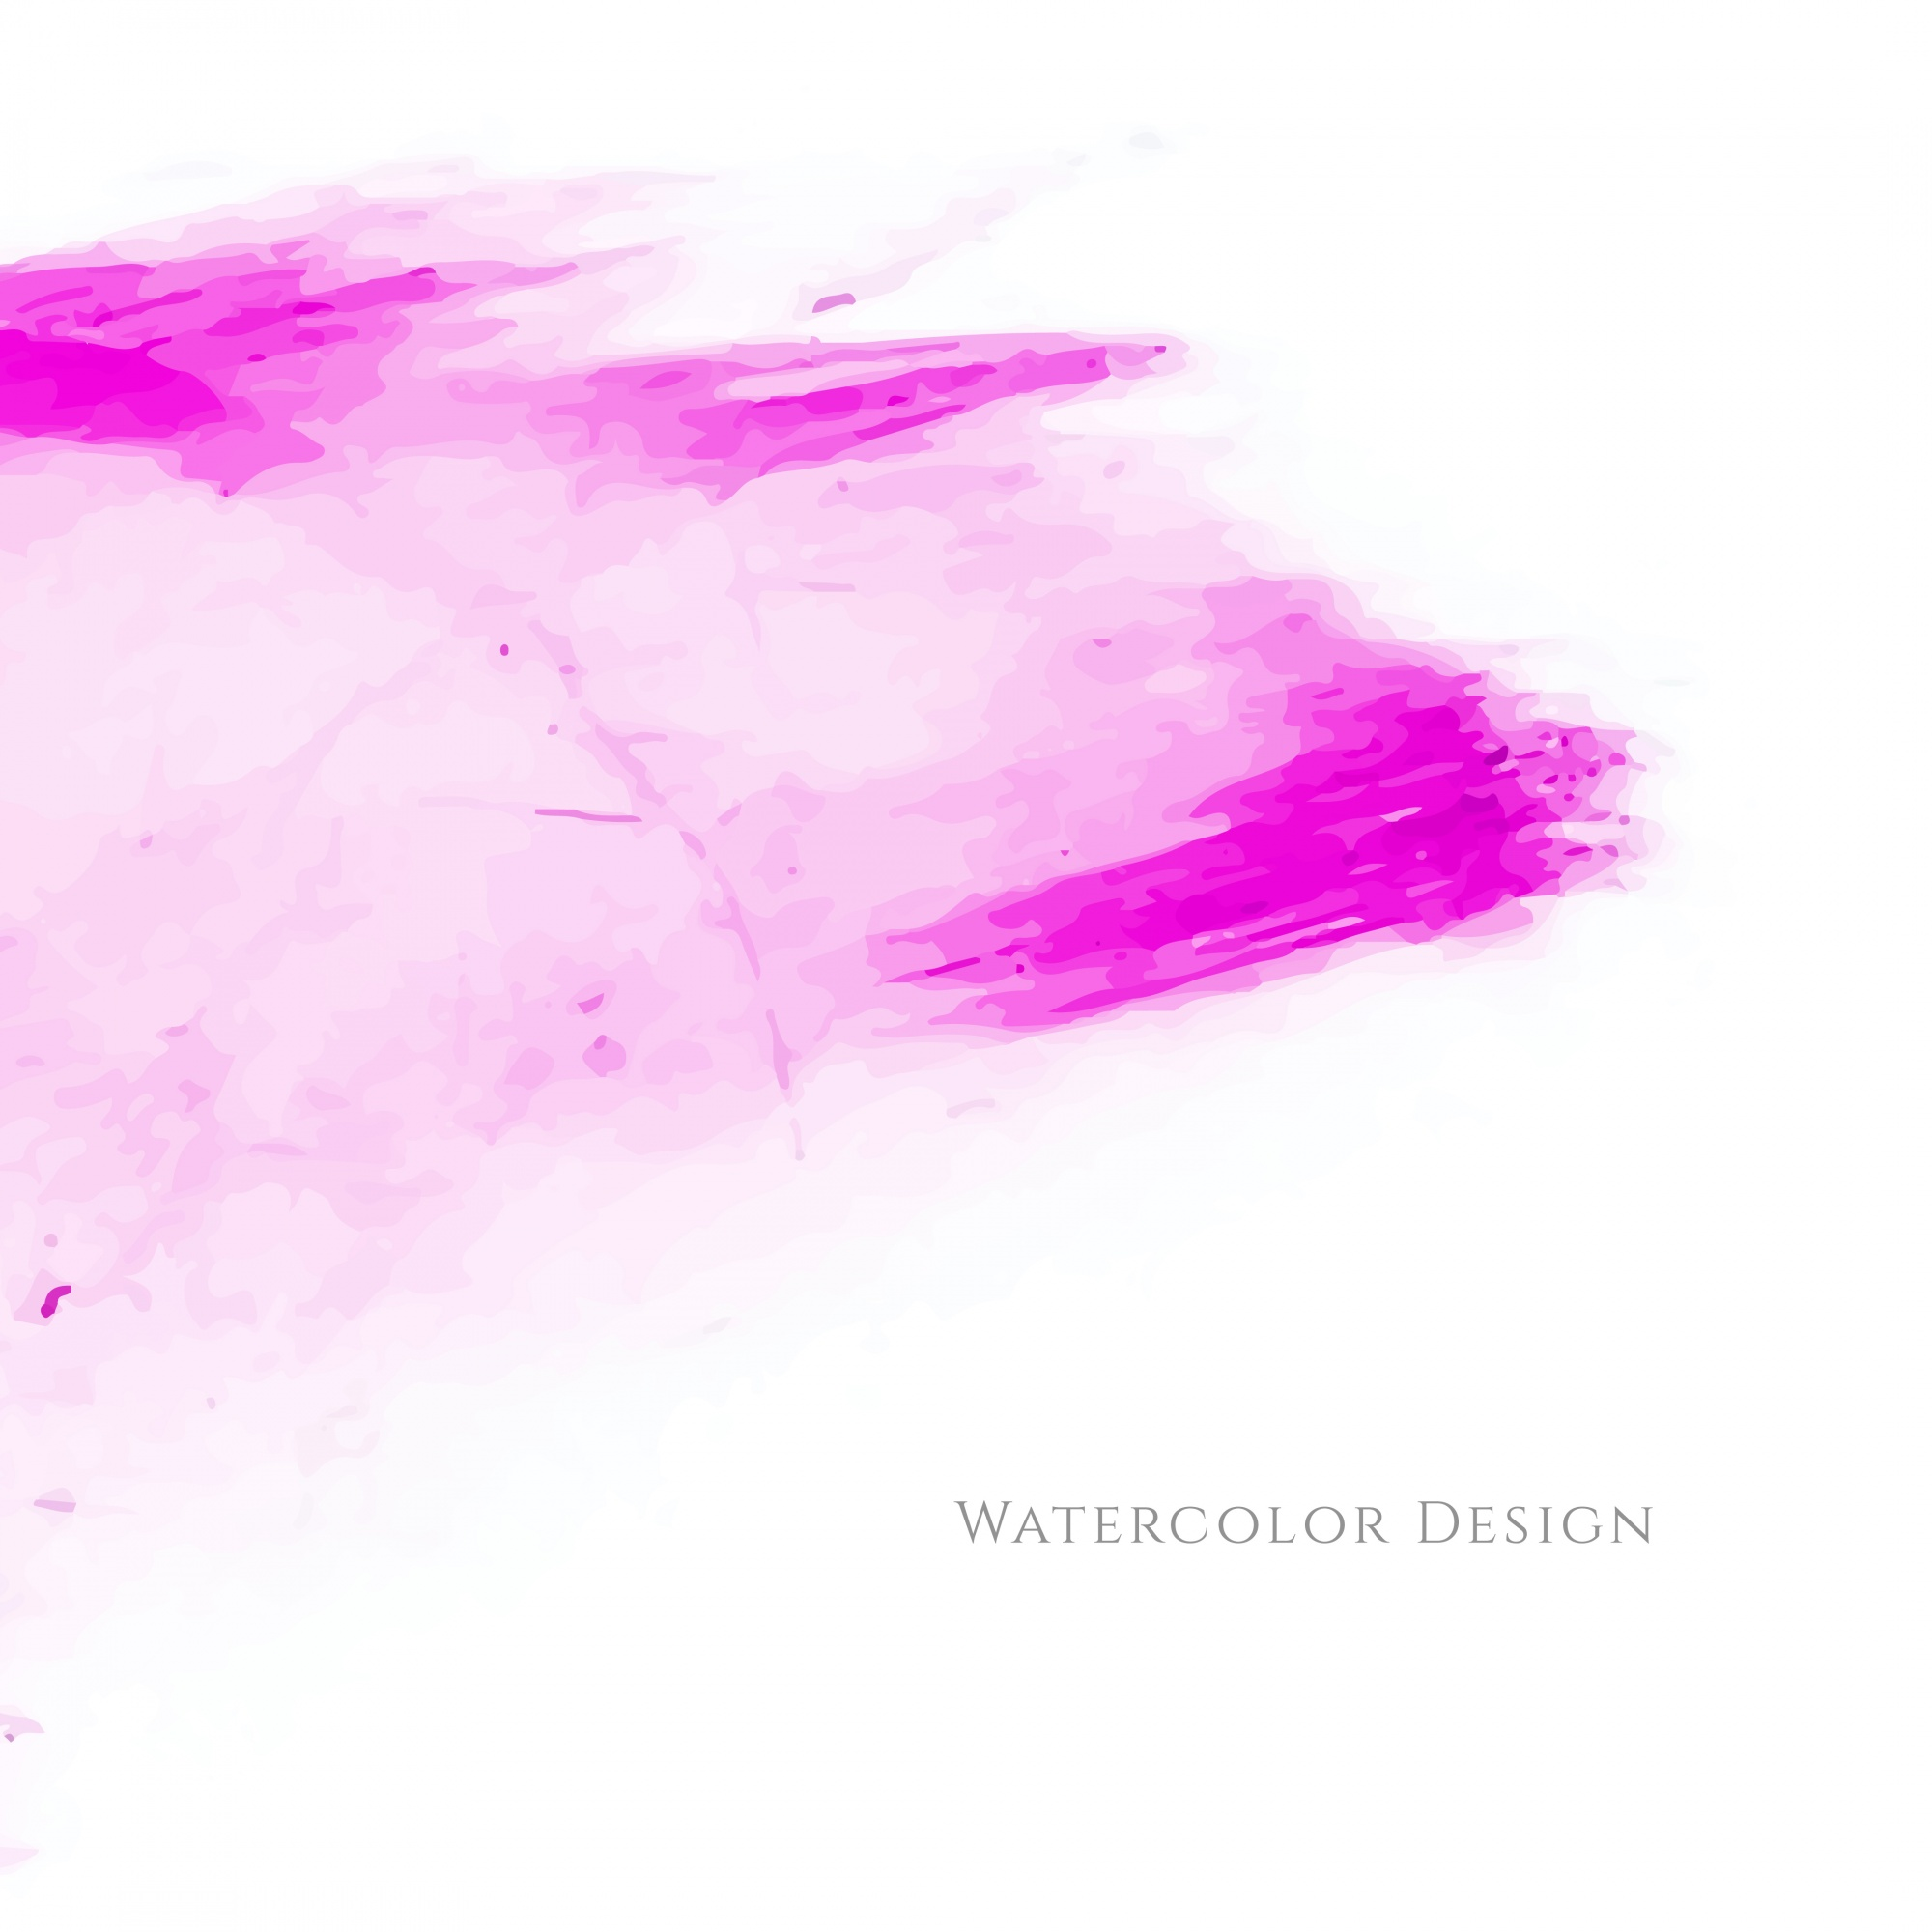 Abstract pink watercolor stain background